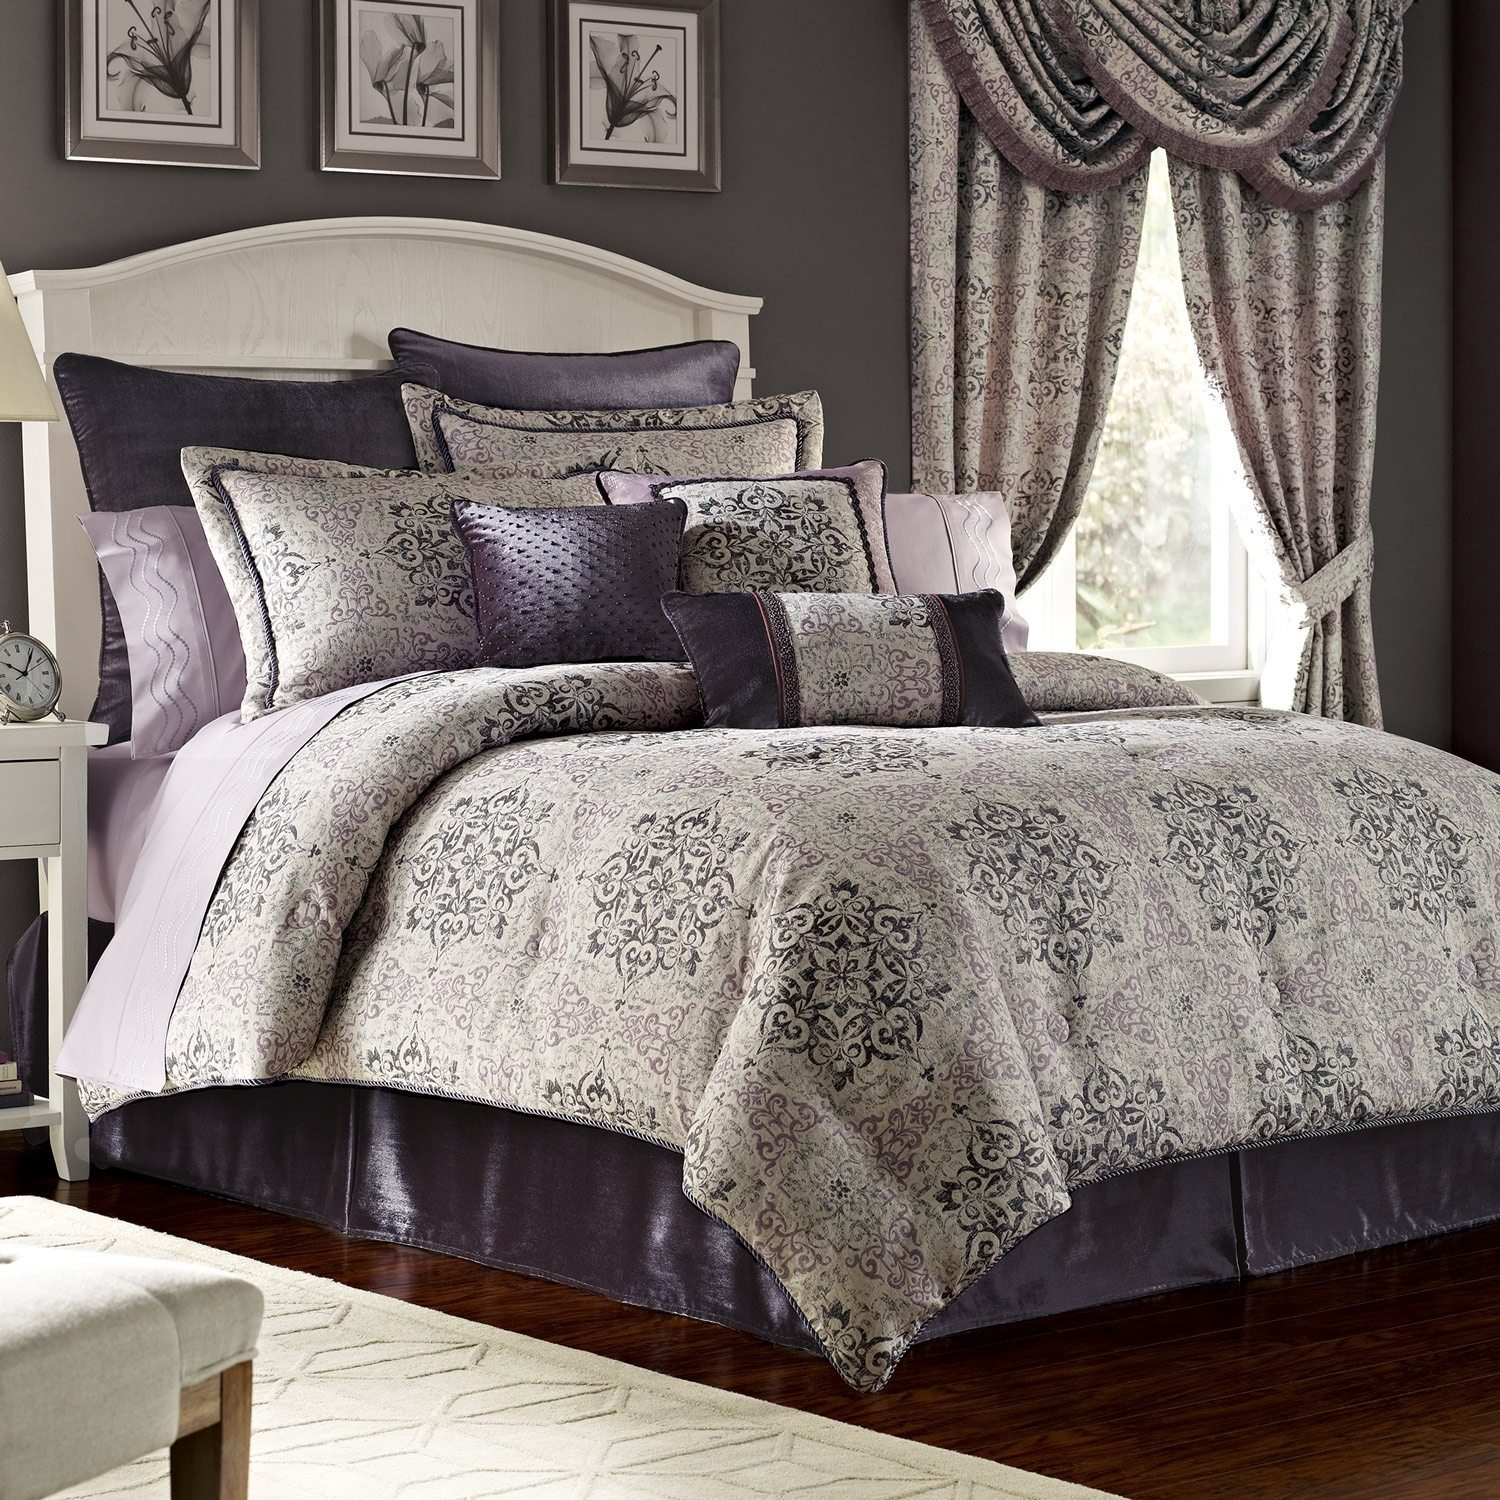 King Comforter Sets Gray Milena Gray 7 Pc Fullqueen Comforter Set 8 Piece King Dawson Black And